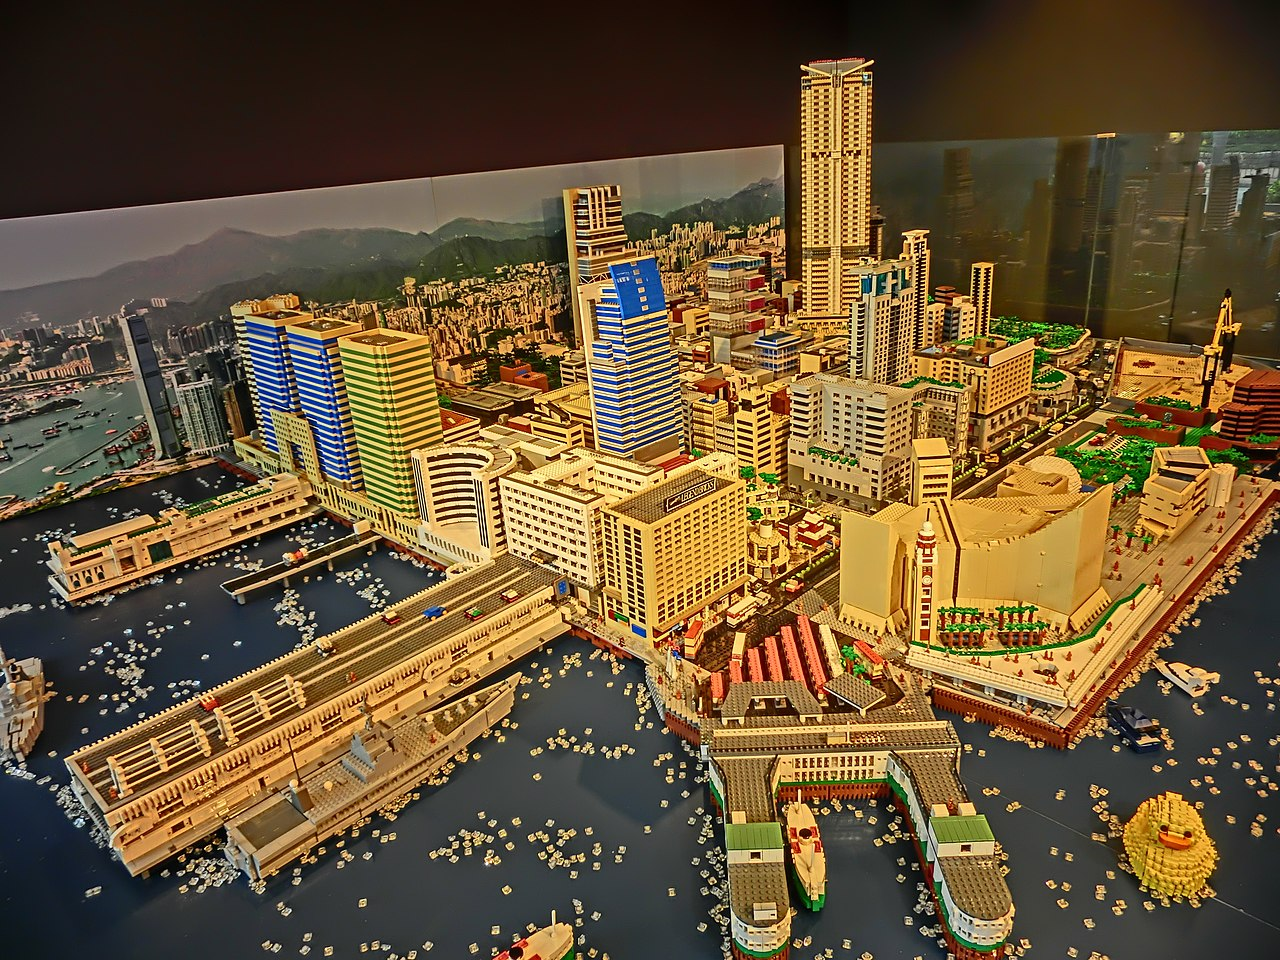 Pictures Of Toy Models Of Cities : File hkpieg city gallery exhibit 尖沙咀 tst 現今 建築物 lego